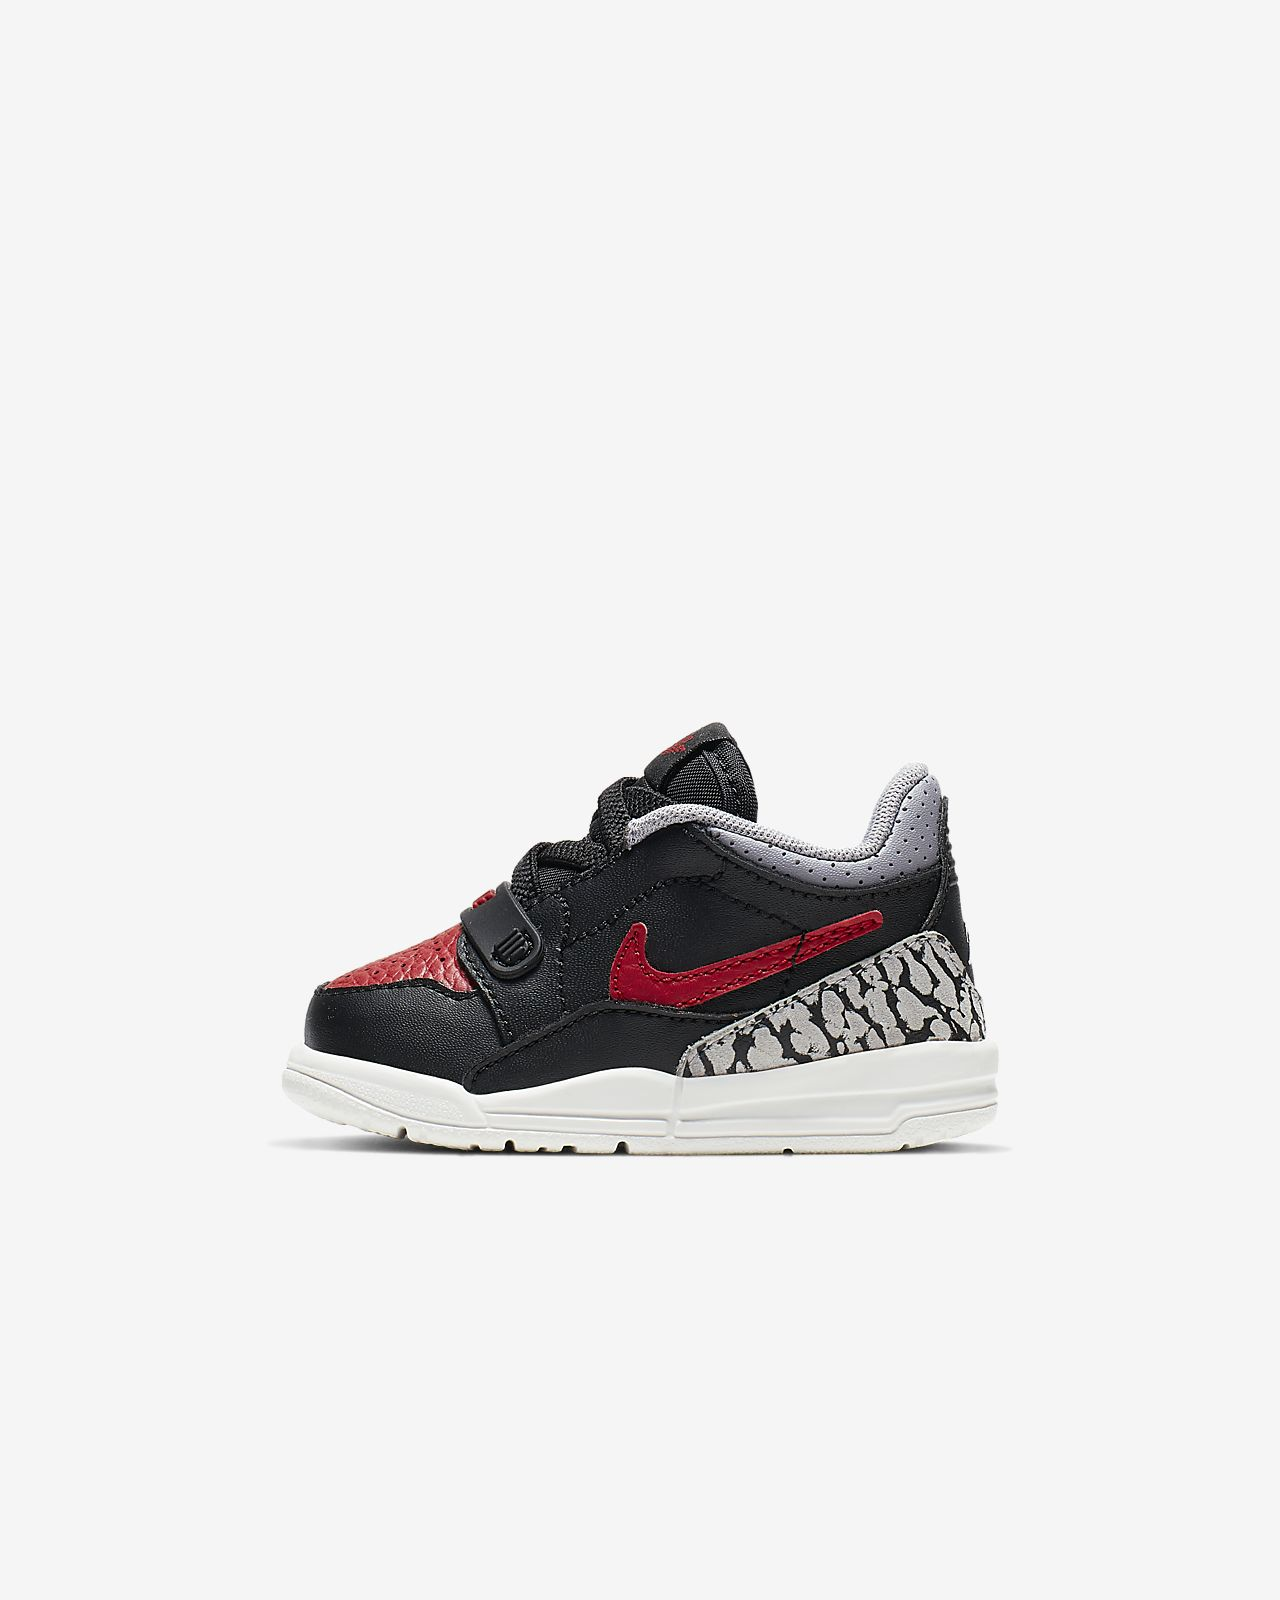 Air Jordan Legacy 312 Low Zapatillas Bebé e infantil